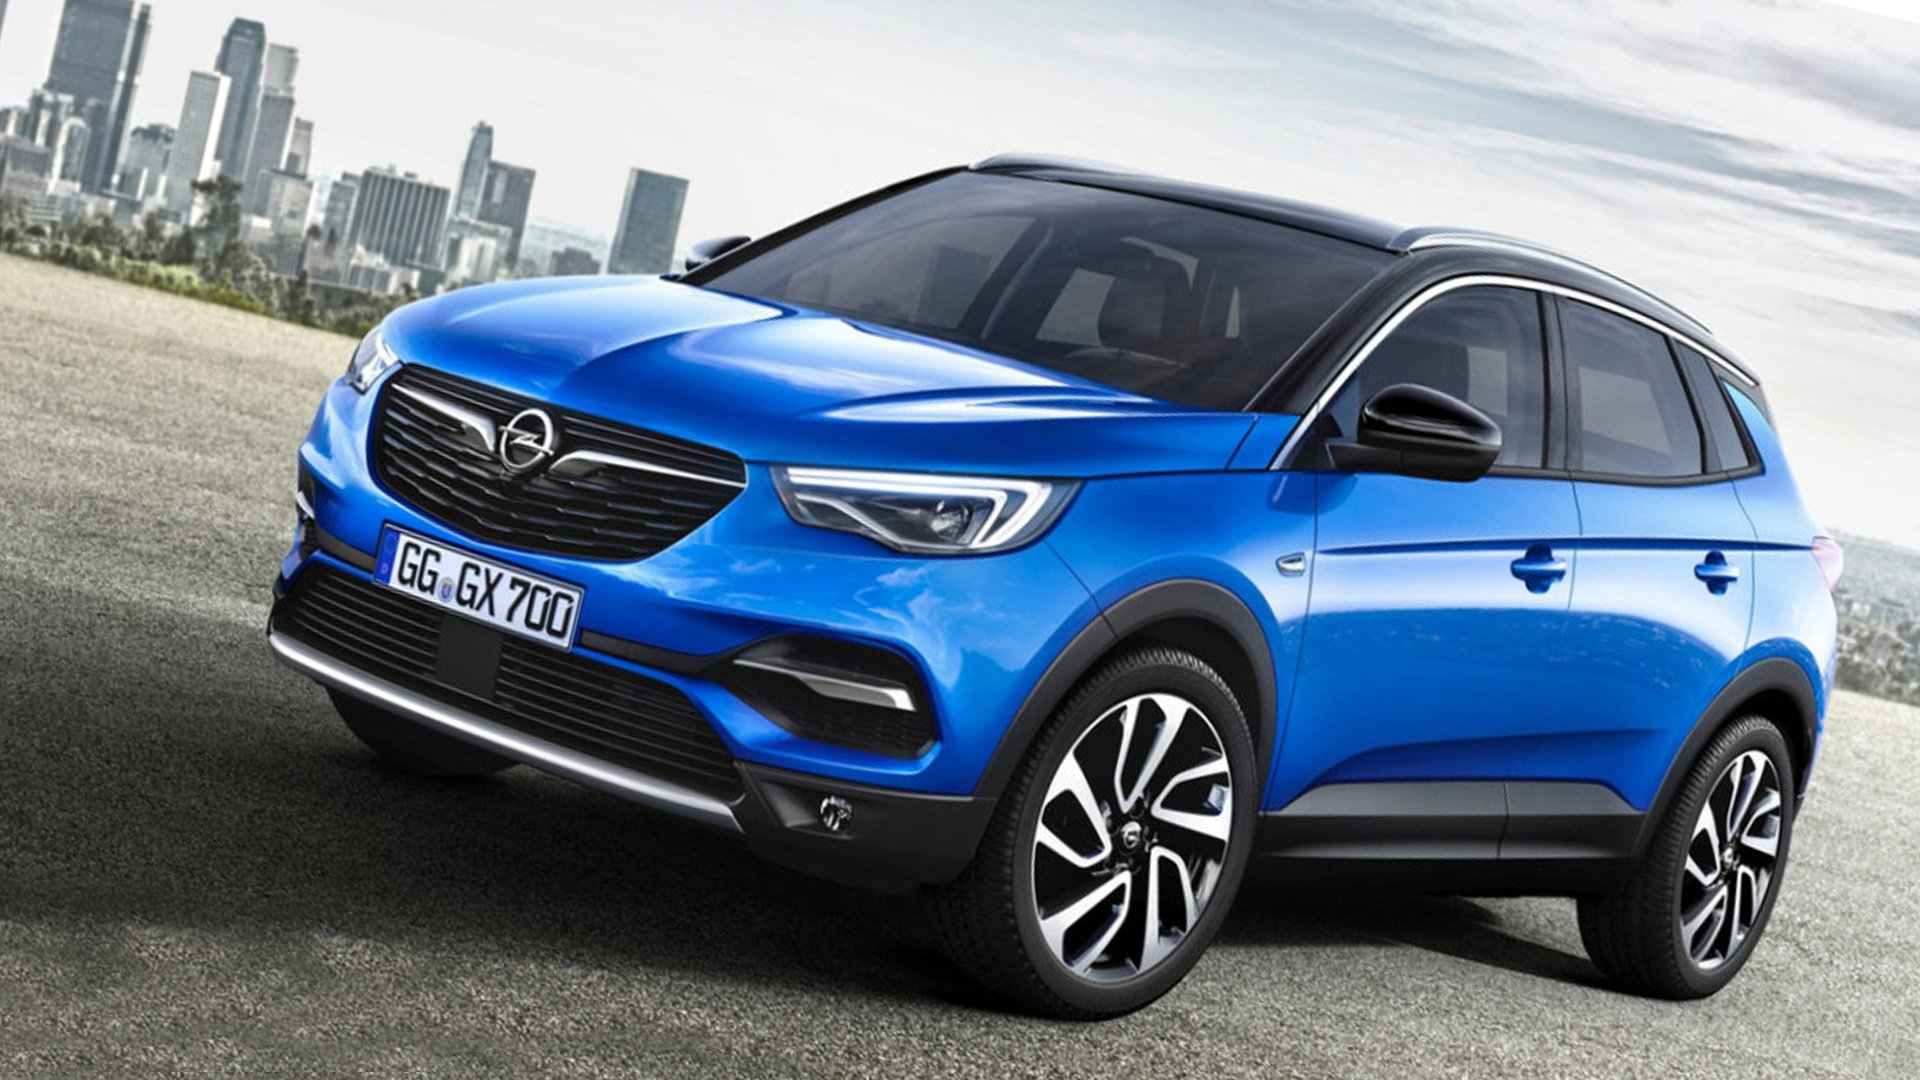 New 2019 Opel Grandland X Price